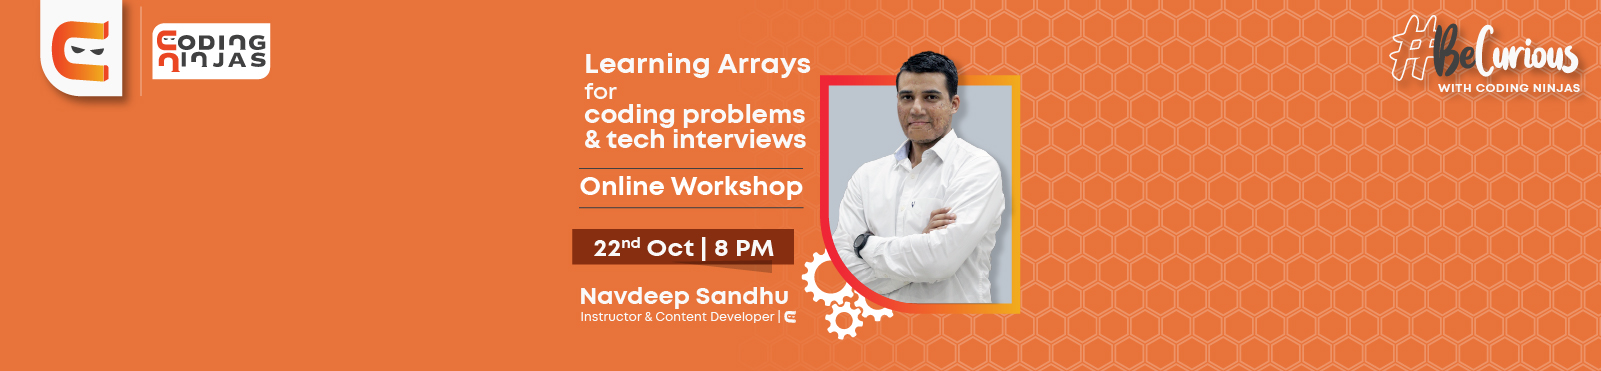 Workshop on Arrays